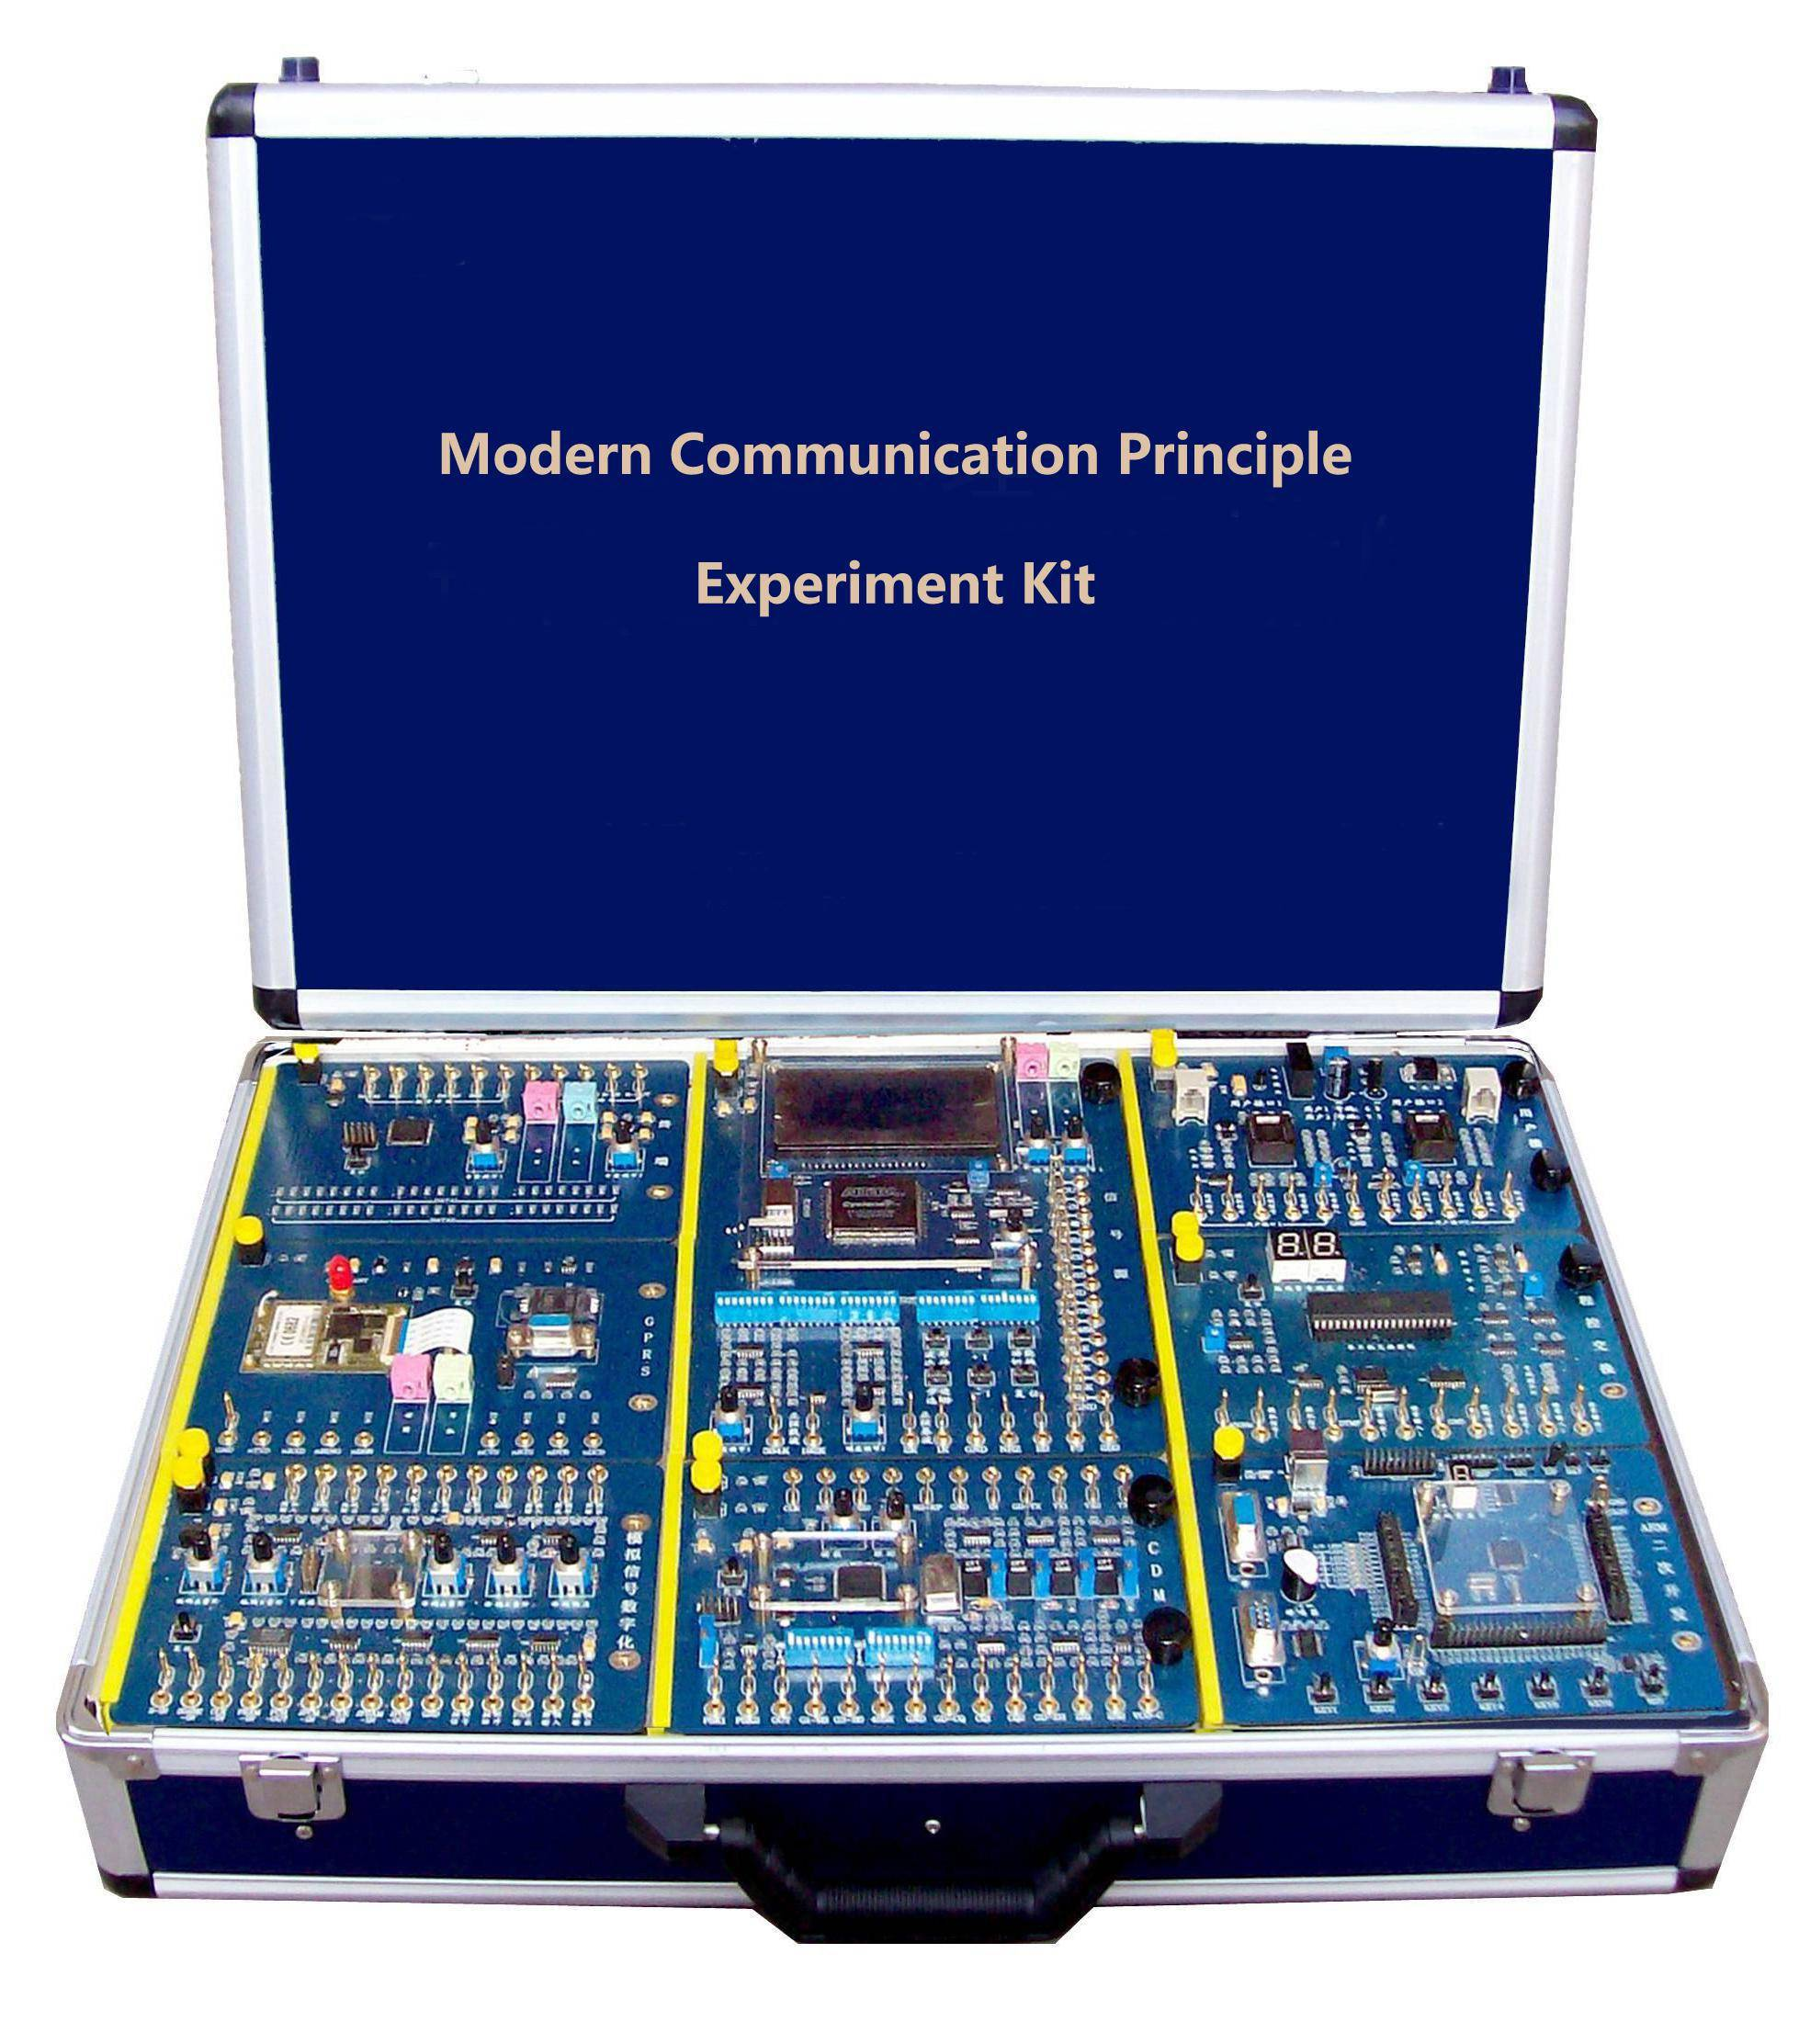 didactic educational training equipment / ES0402G Modern Communication Principle Experiment Kit